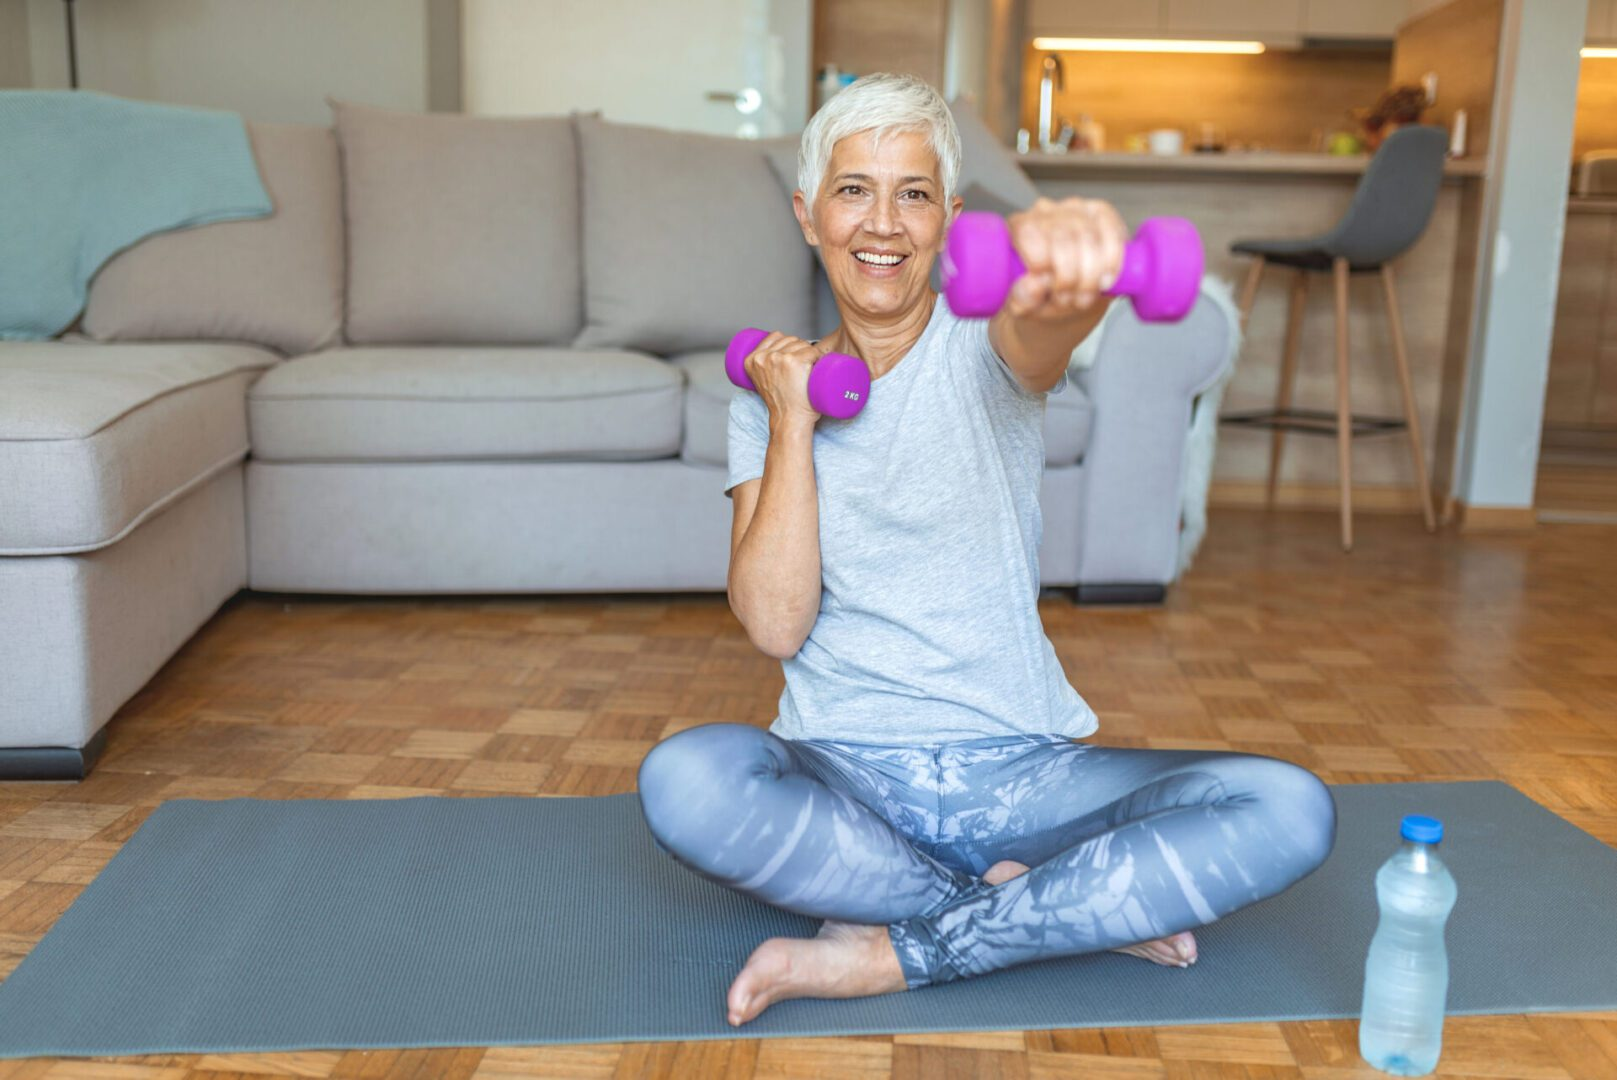 Woman with short grey hair working out with pink dumbells on a mat in her living room